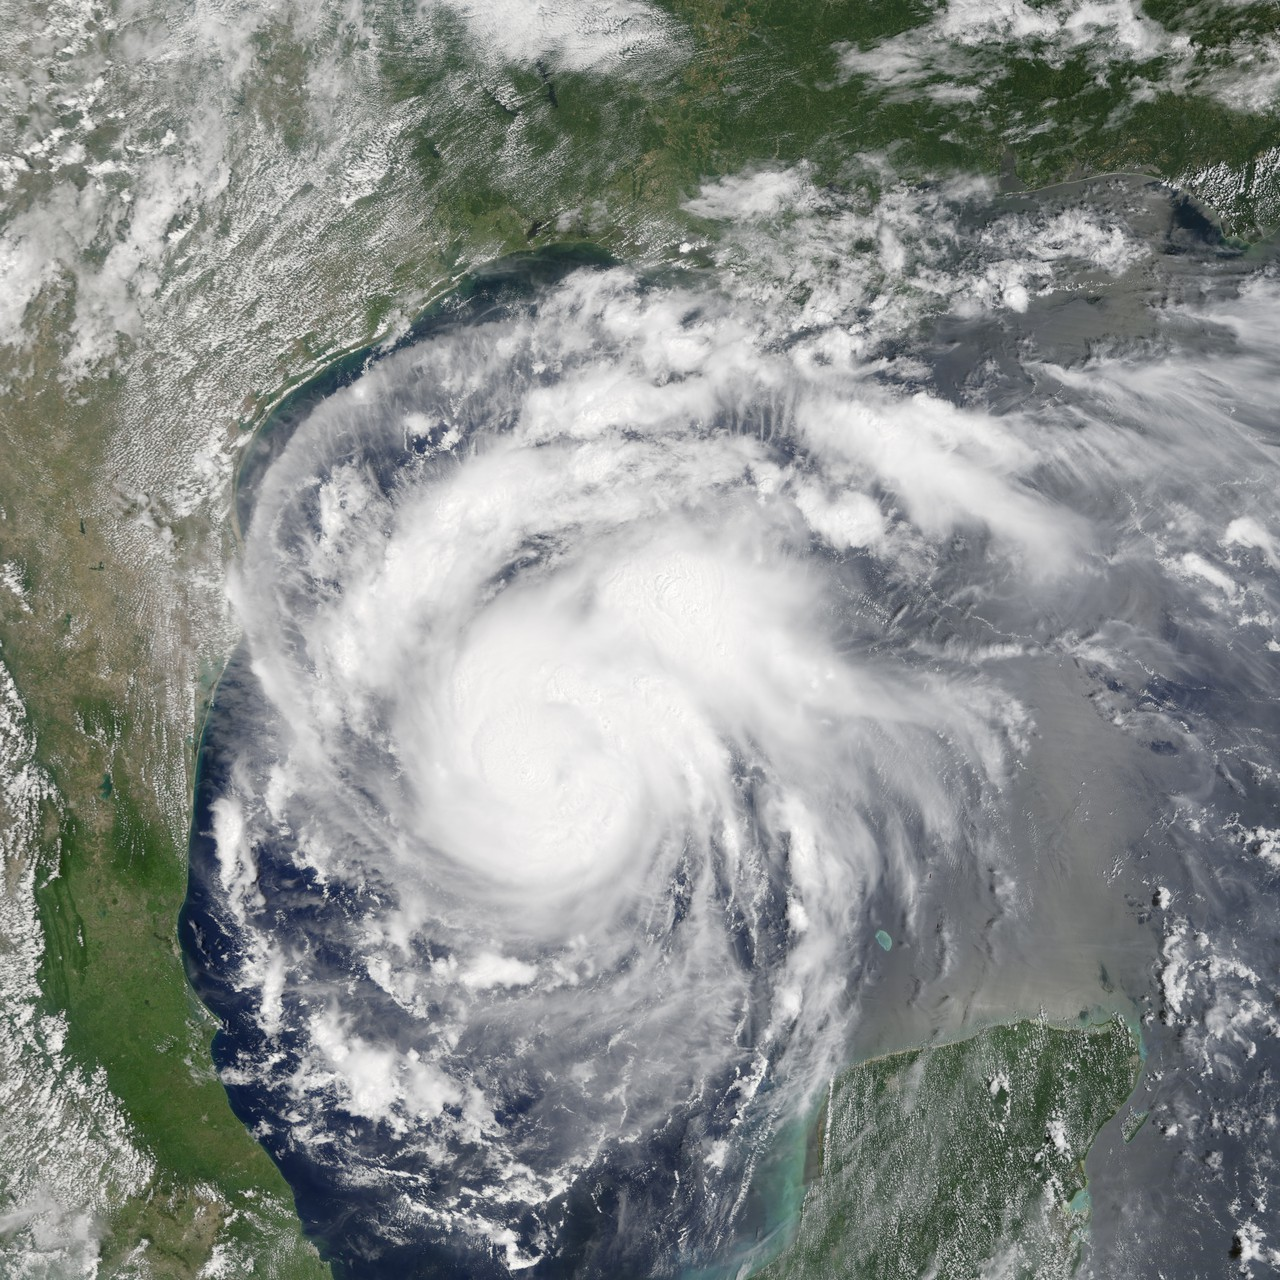 Hurricane Harvey from space on 24 August 2017 (Credit: NASA Earth Observatory/J. Allen/Terra - MODIS)